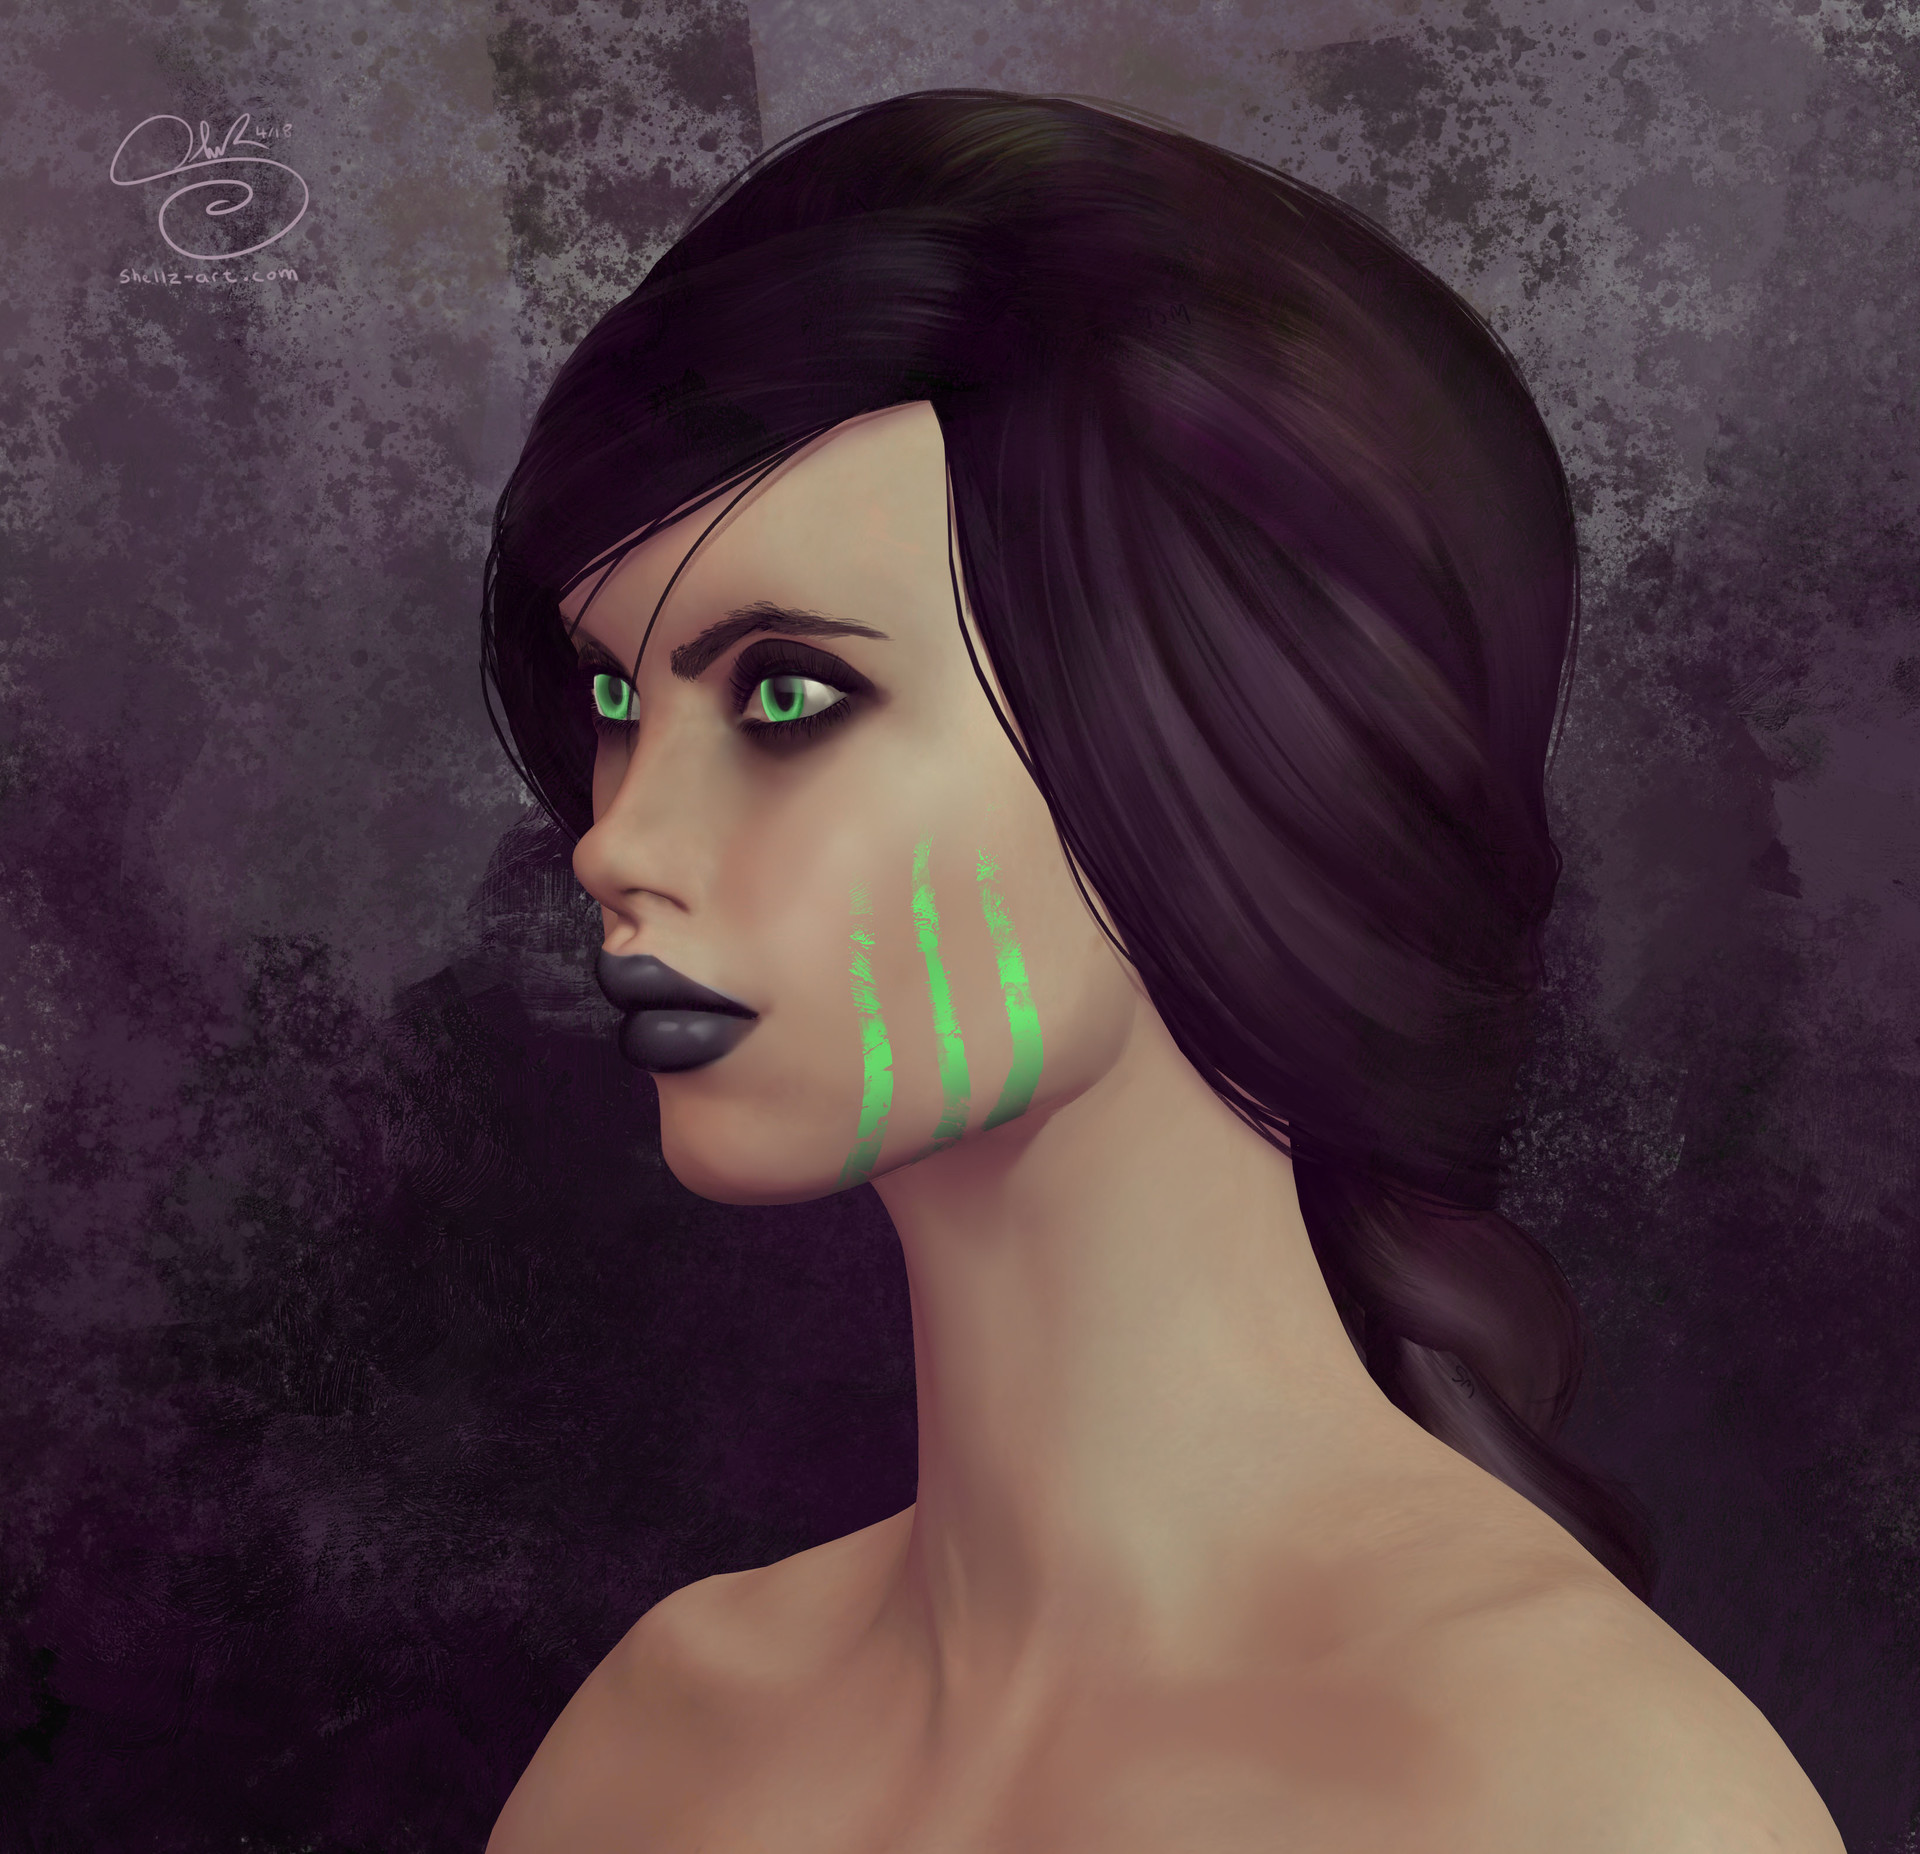 Shellz art main character portrait